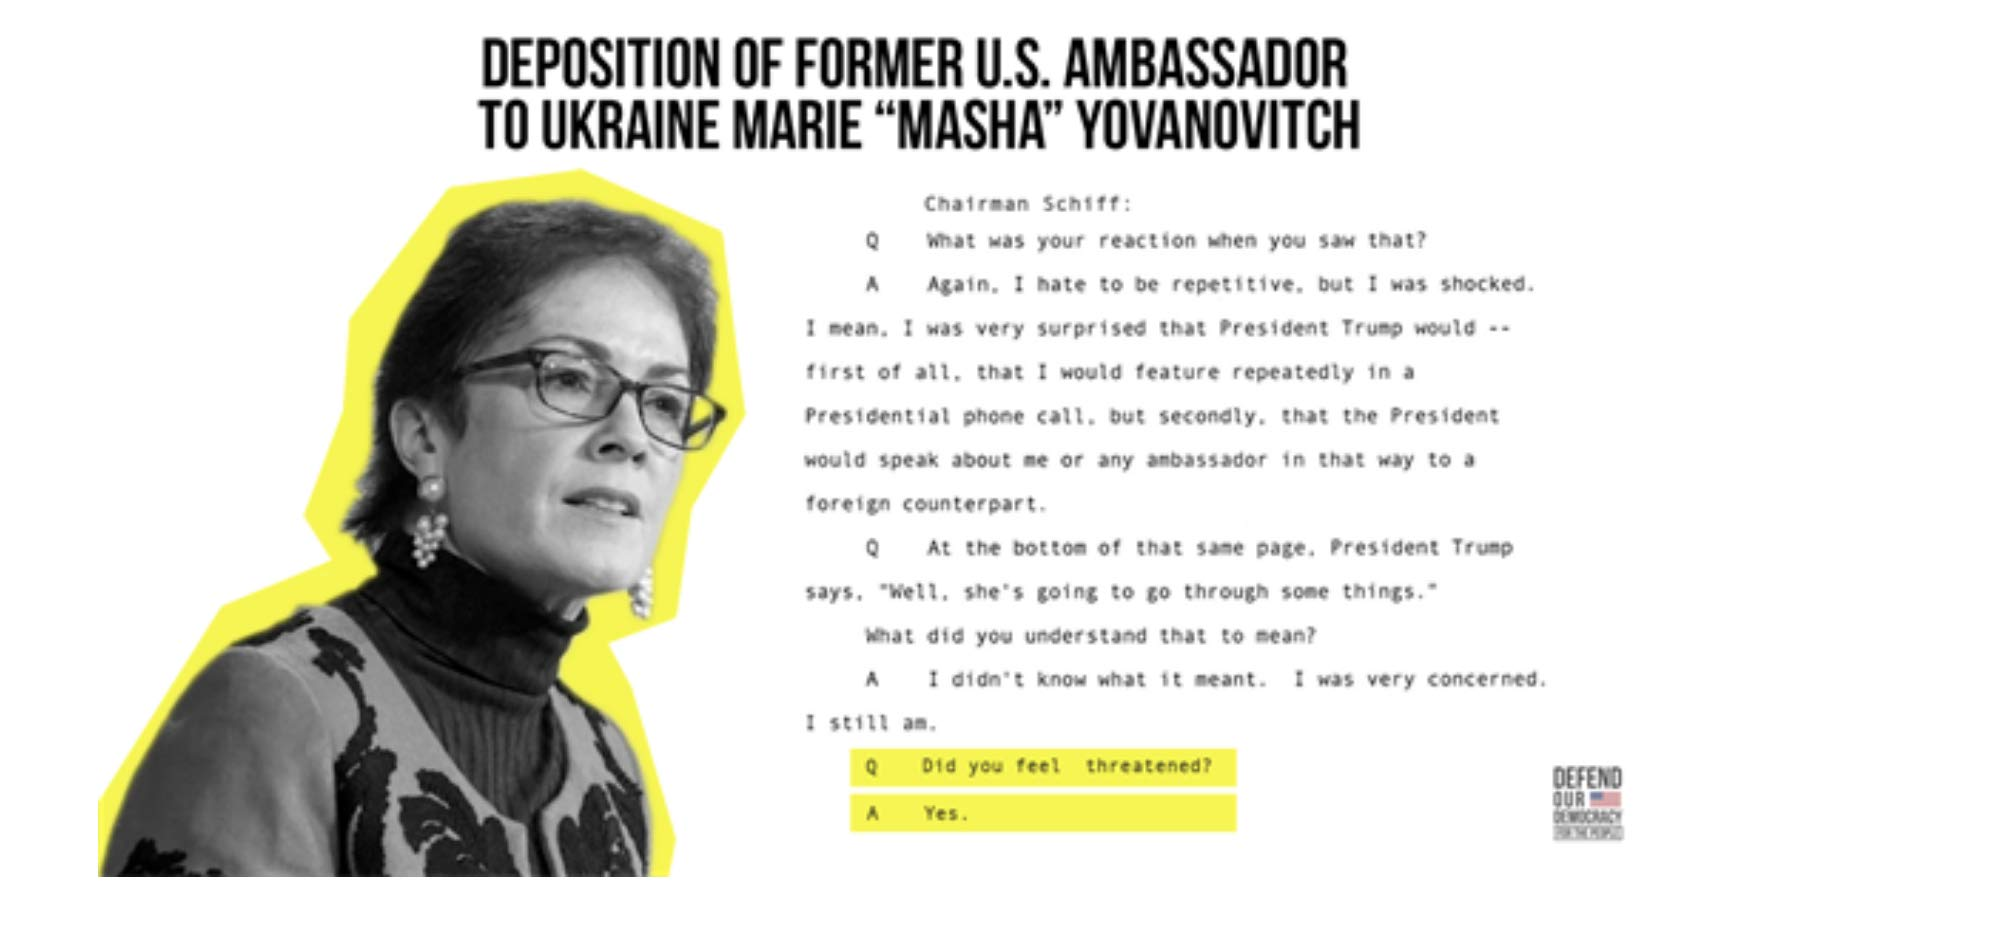 THE TRUMP-UKRAINE IMPEACHMENT INQUIRY: Full Testimonies of Yovanovitch, McKinley, Sondland, Volker, Taylor & Kent